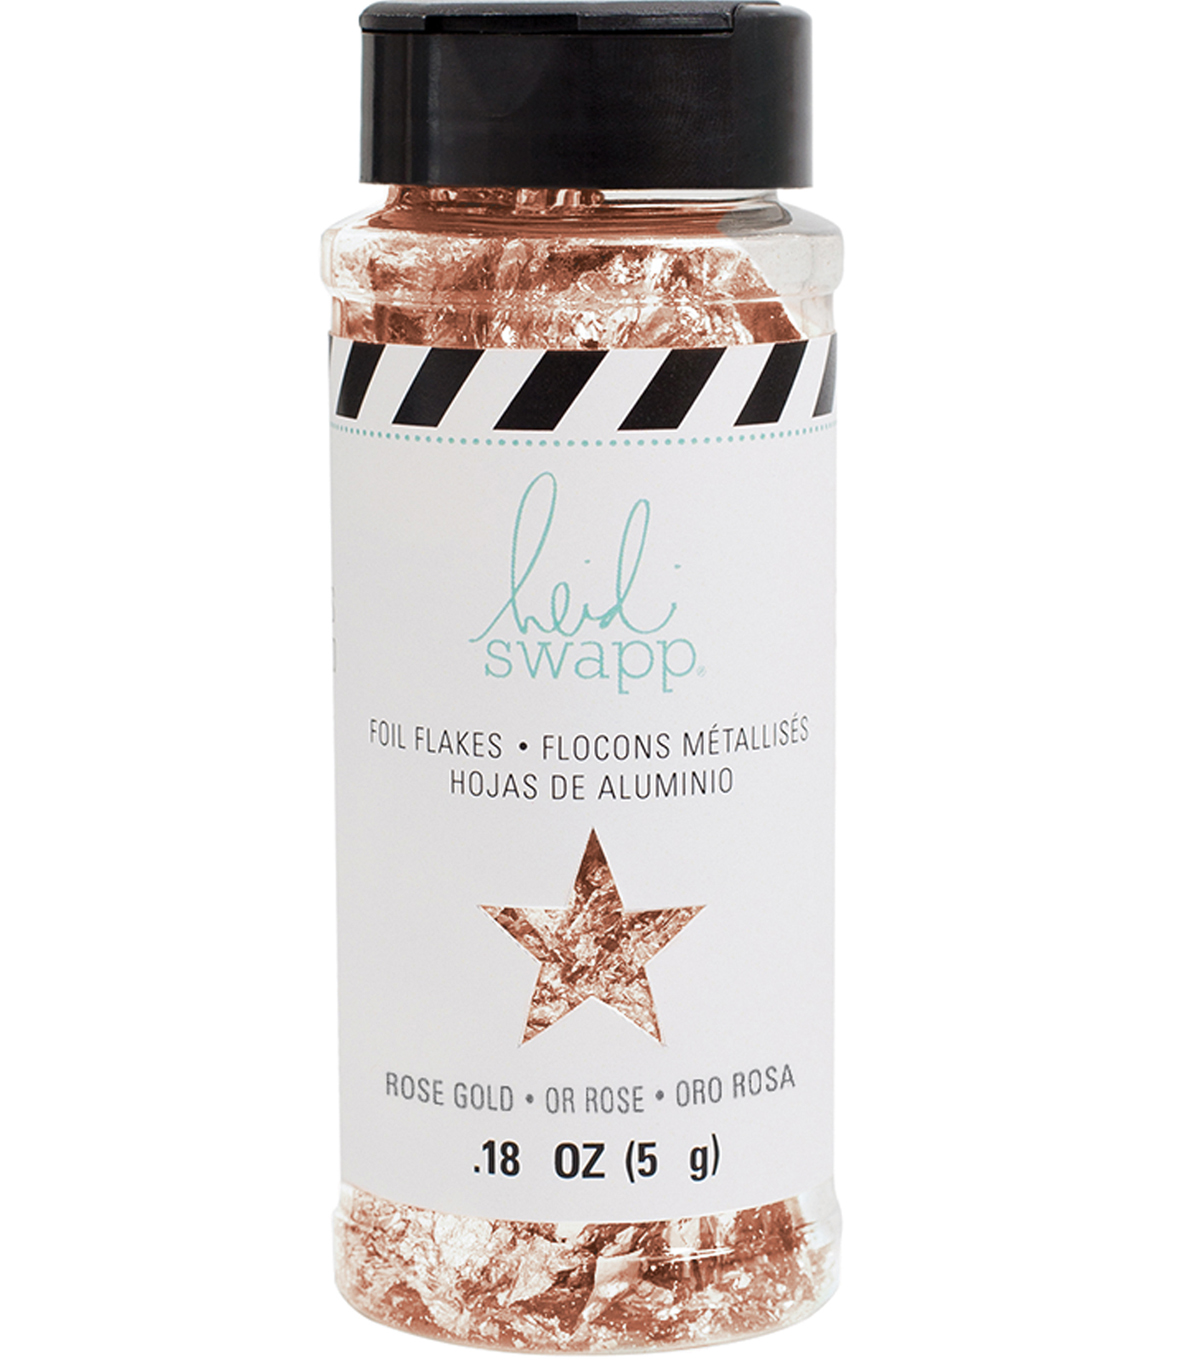 Heidi Swapp 0.18 oz. Foil Flakes-Rose Gold